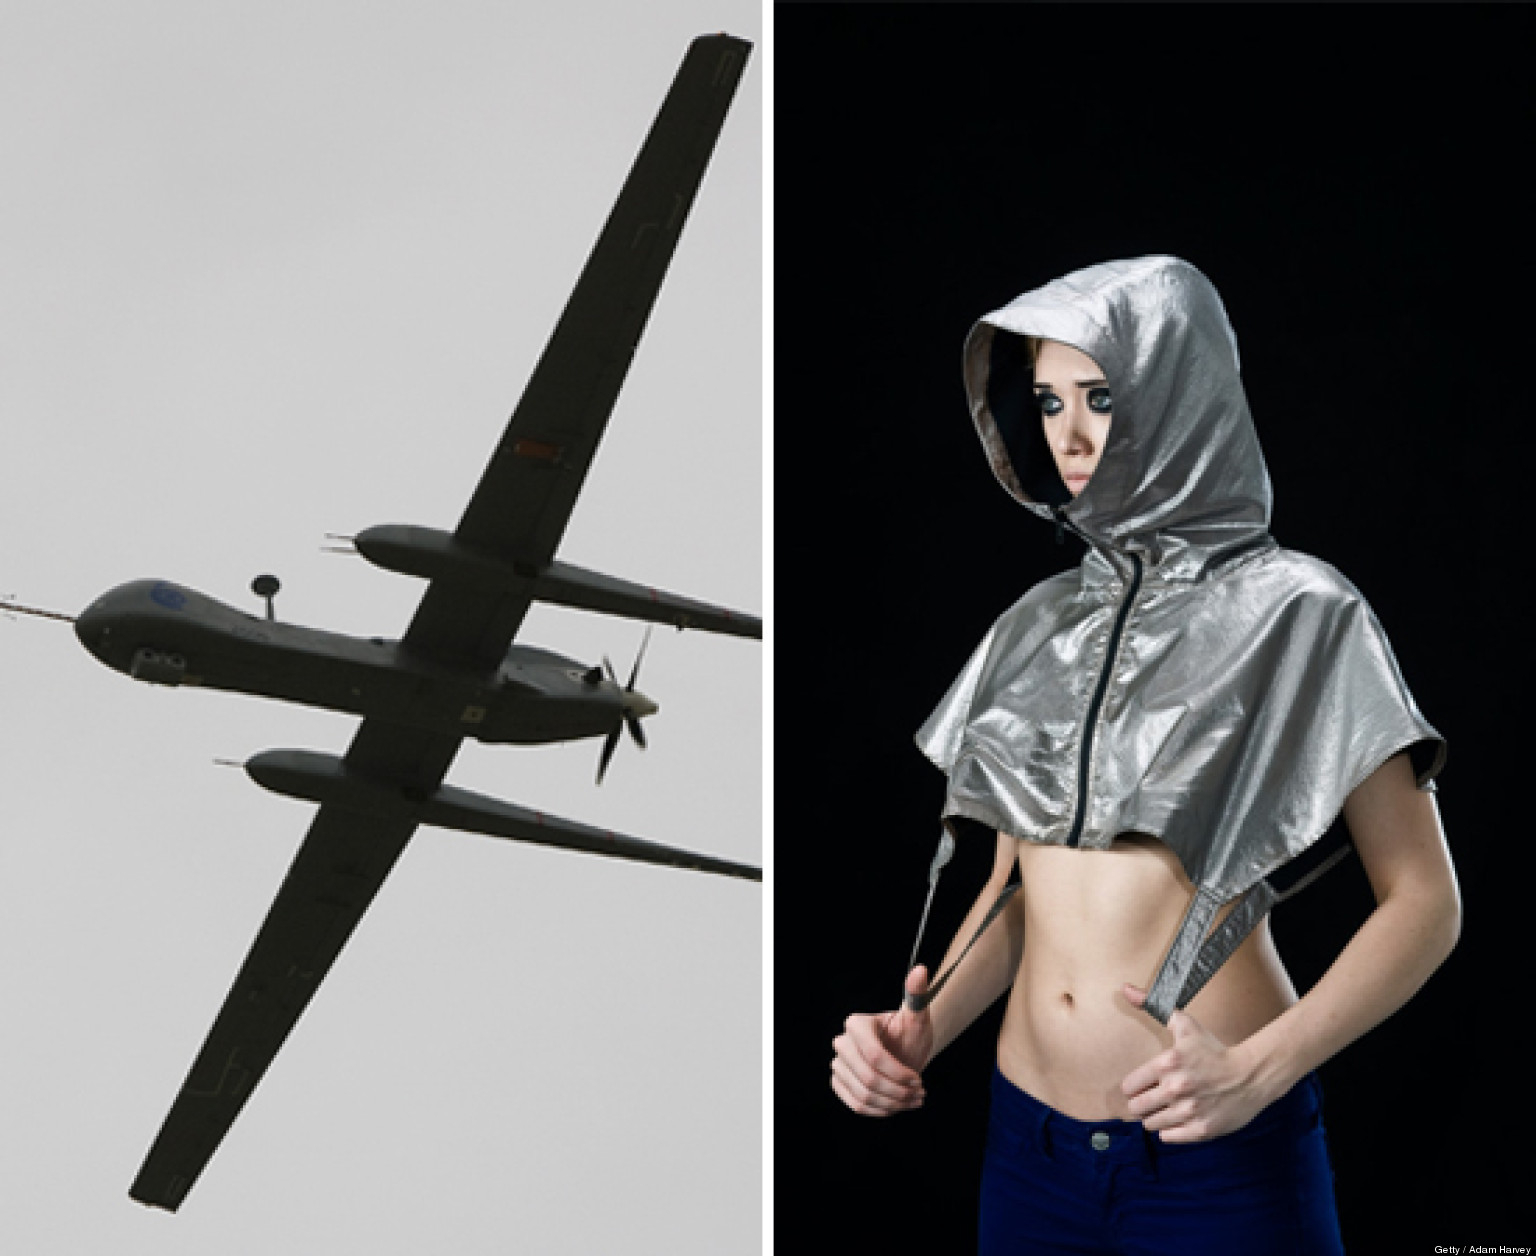 39;Anti-Drone' Hoodie By Adam Harvey Is Your Ready-To-Wear Counter-Surveillance Solution